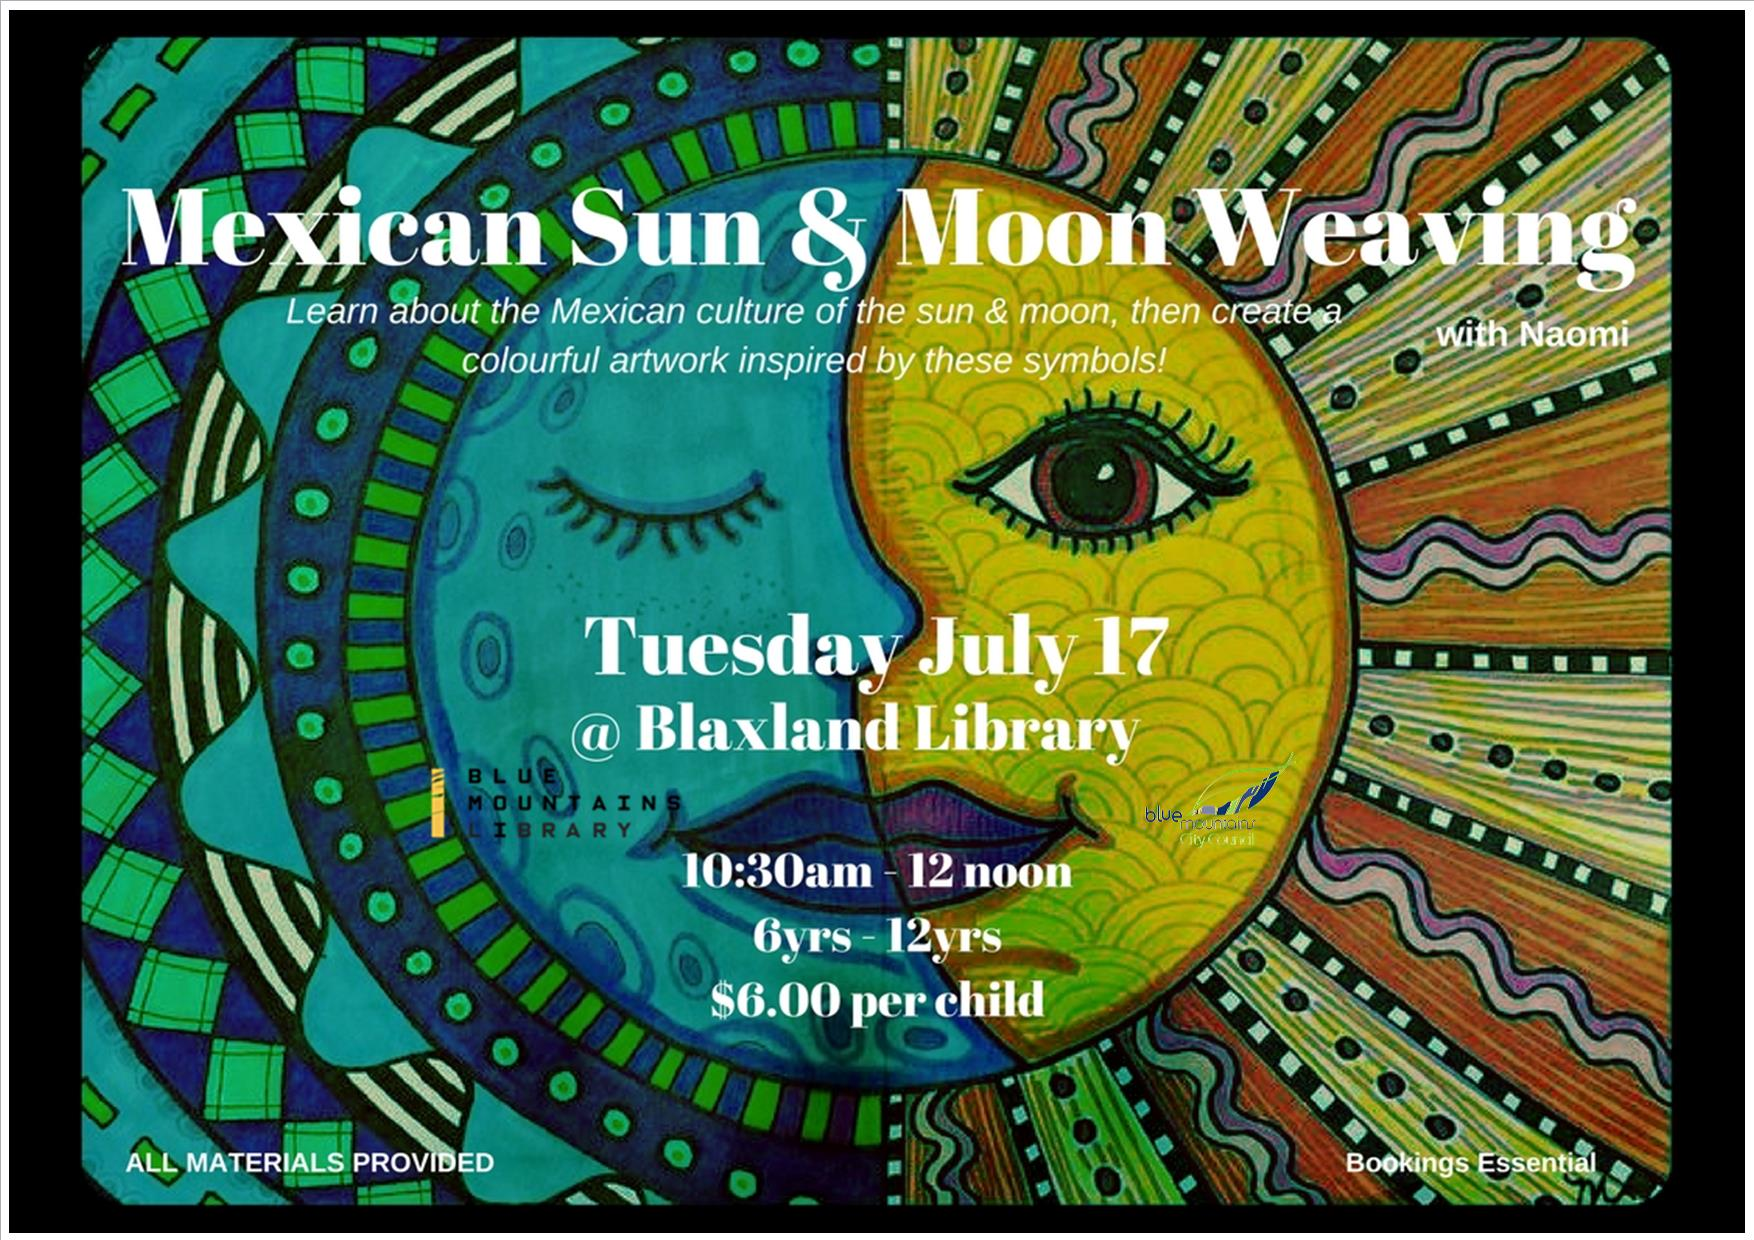 Mexican Sun and Moon Weaving, Blaxland Library, Tuesday 17th July, 10:30am-12noon, 6-12yrs, $6 per child